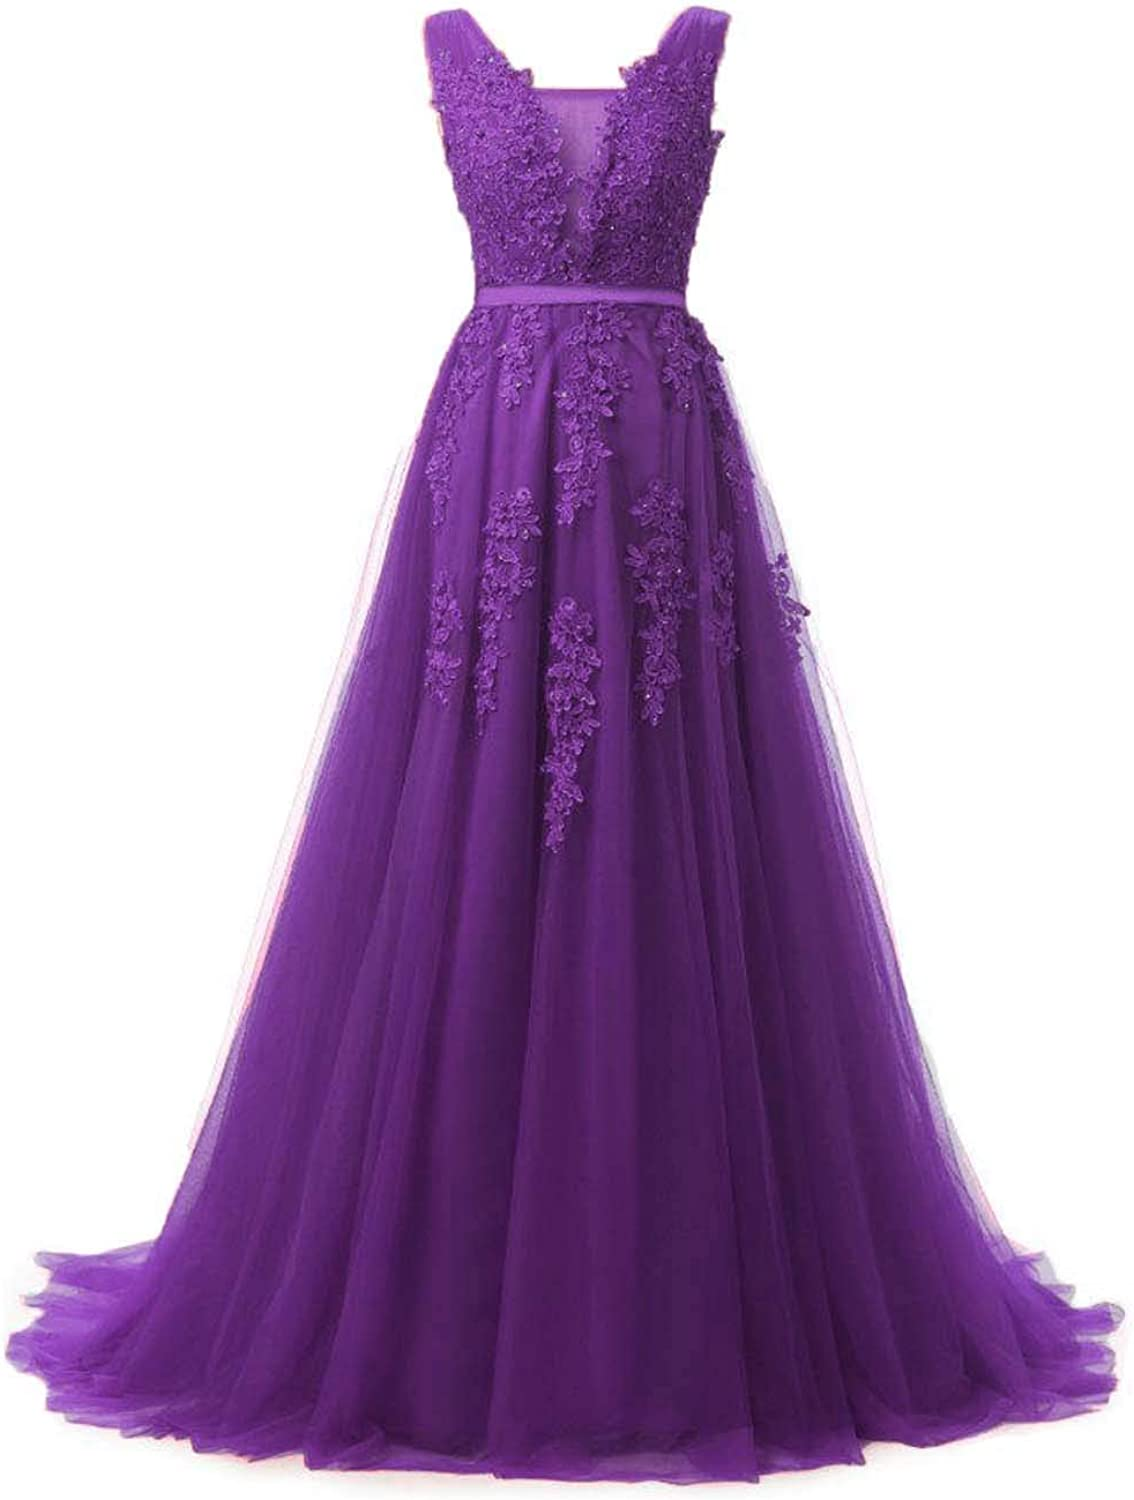 Huifany Women's V Neck Lace Aline Empire Long Formal Evening Dress Prom Gown